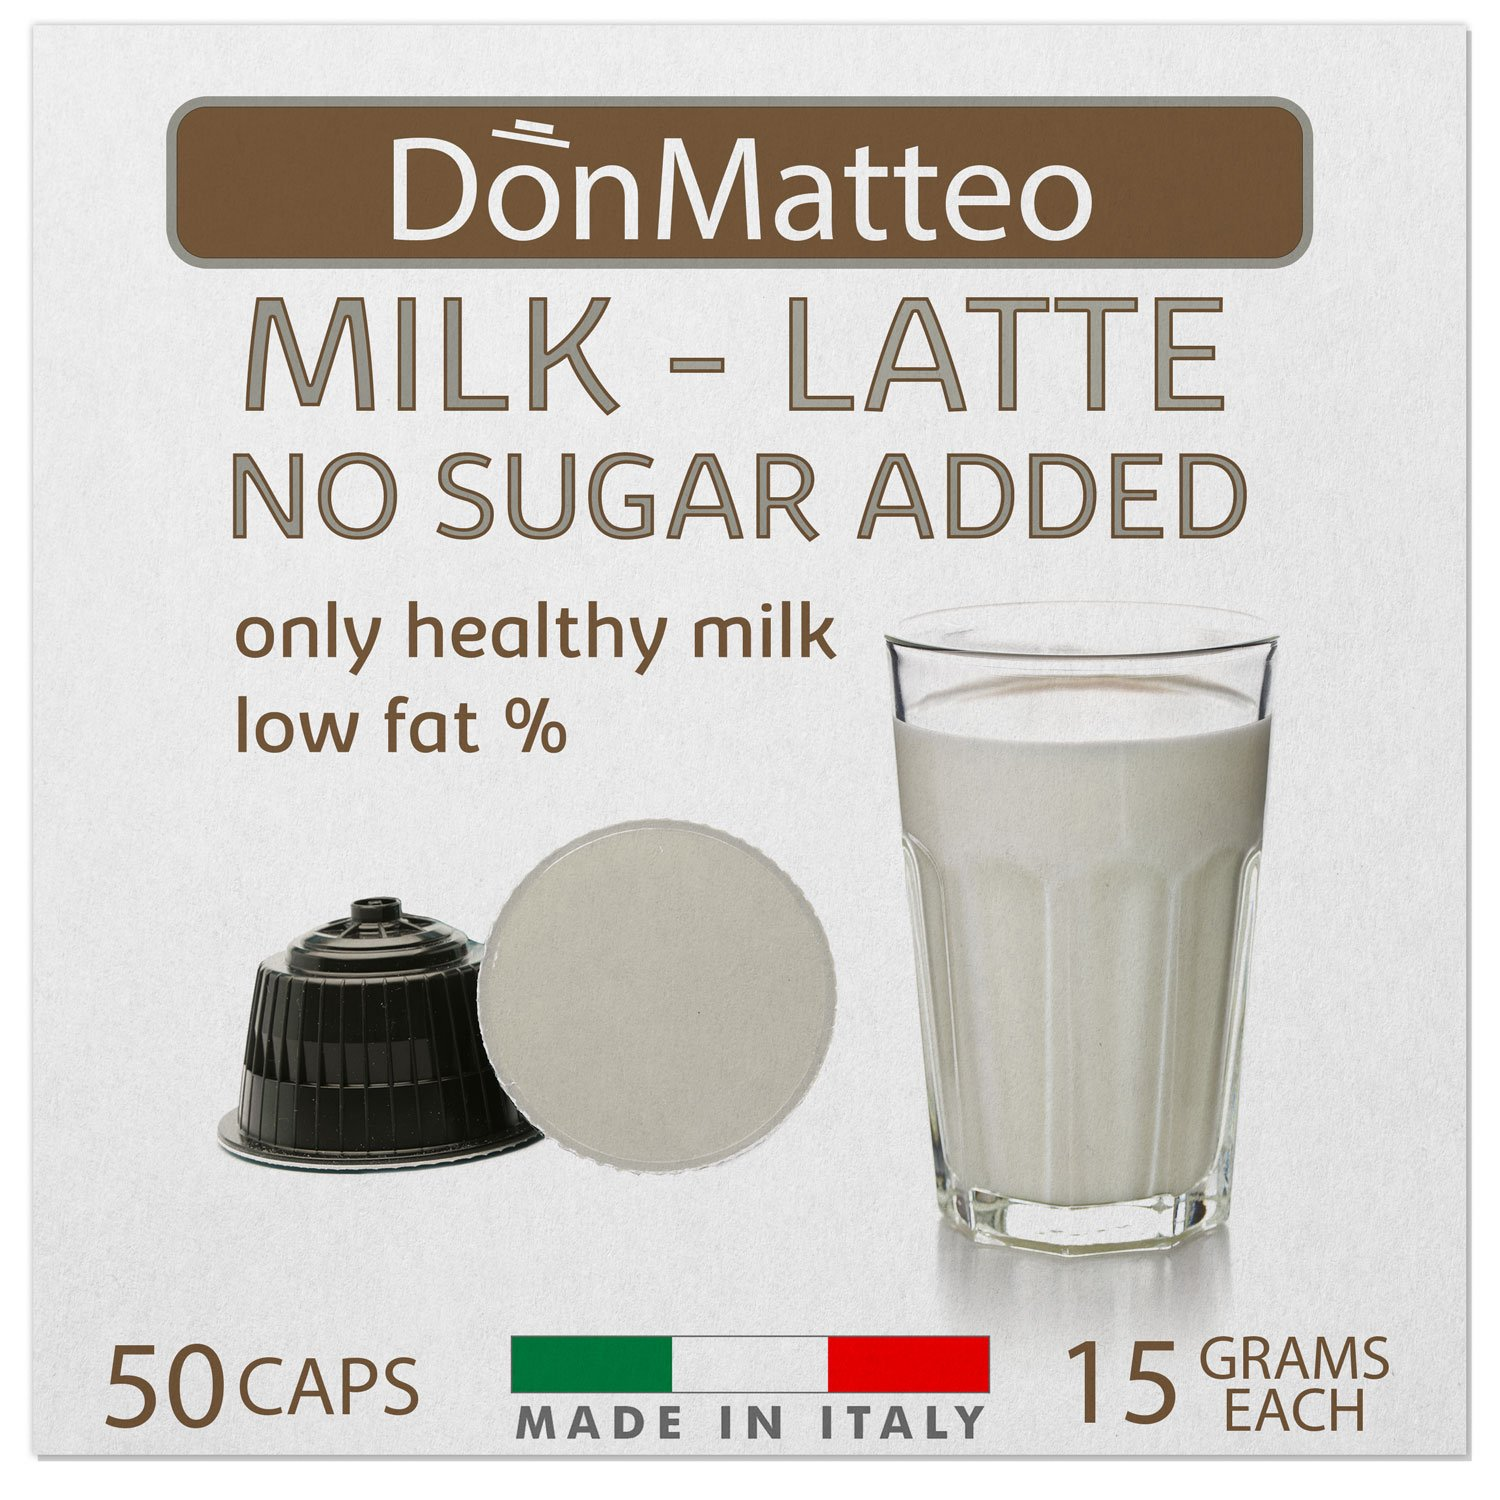 DonMatteo 50 Milk Latte Dolce Gusto Compatible Coffee Capsules (50 Pods 50 Servings)